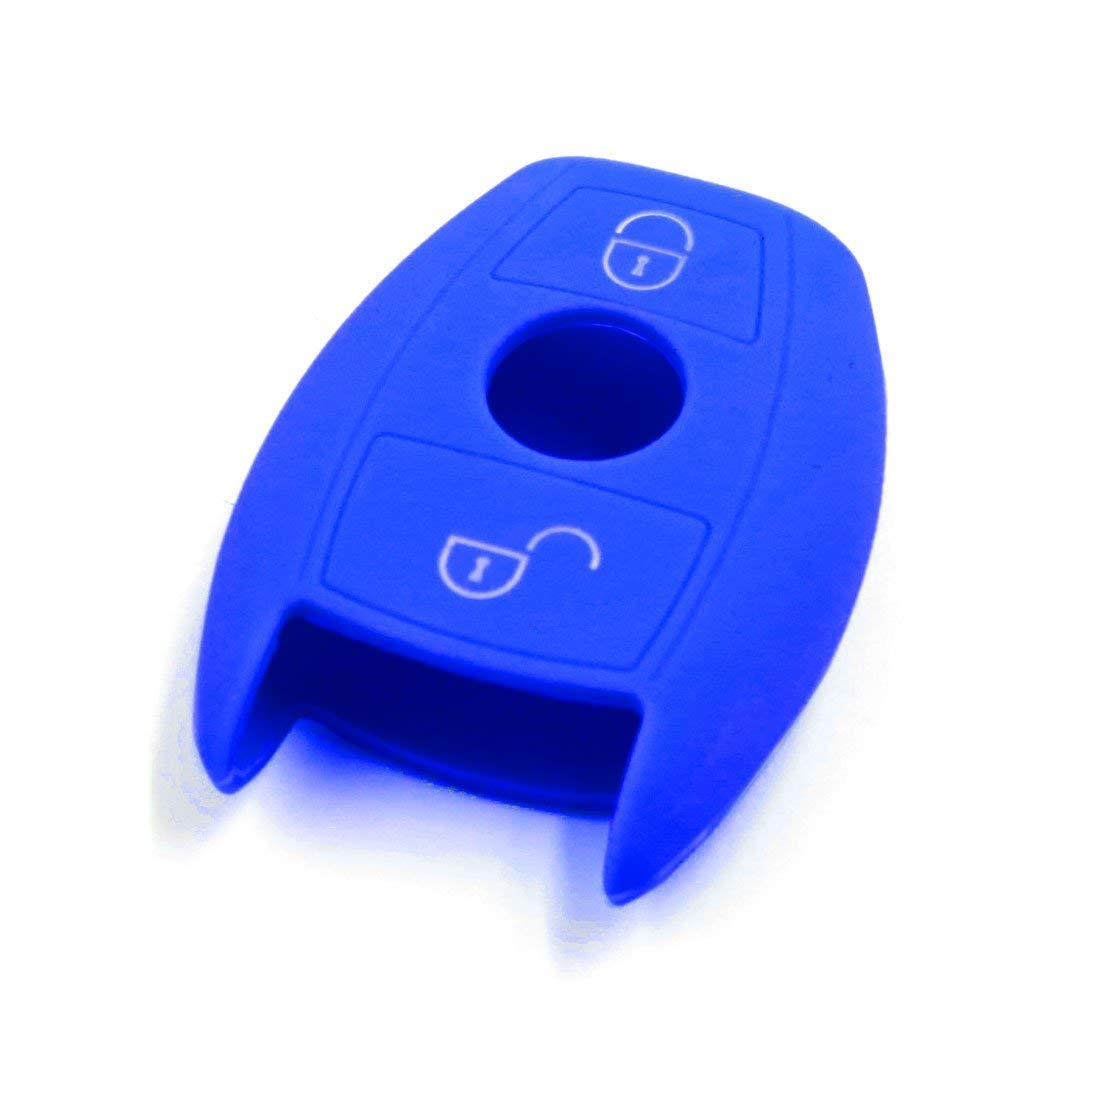 uxcell Blue Silicone Car Remote Key Fob Cover Case for Mercedes Benz E C Class C260